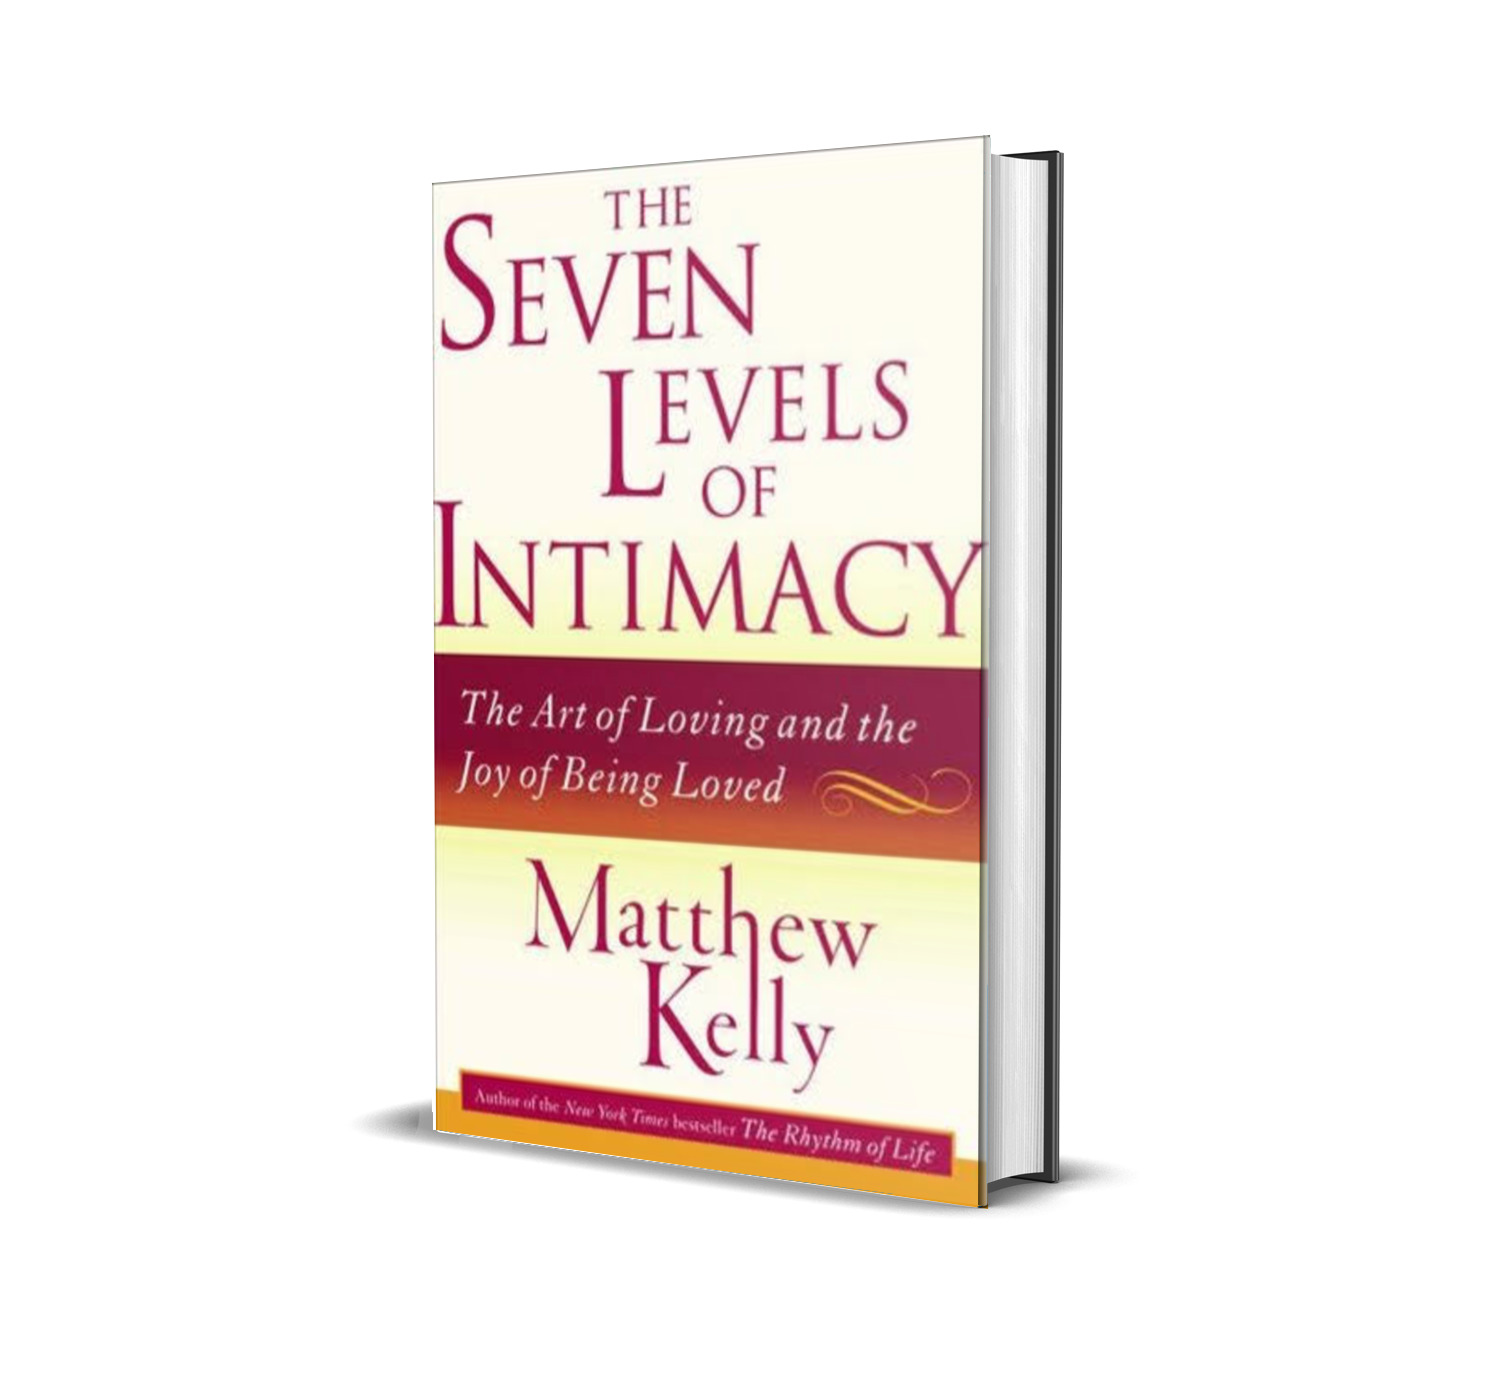 The seven levels of intimacy- Matthew Kelly